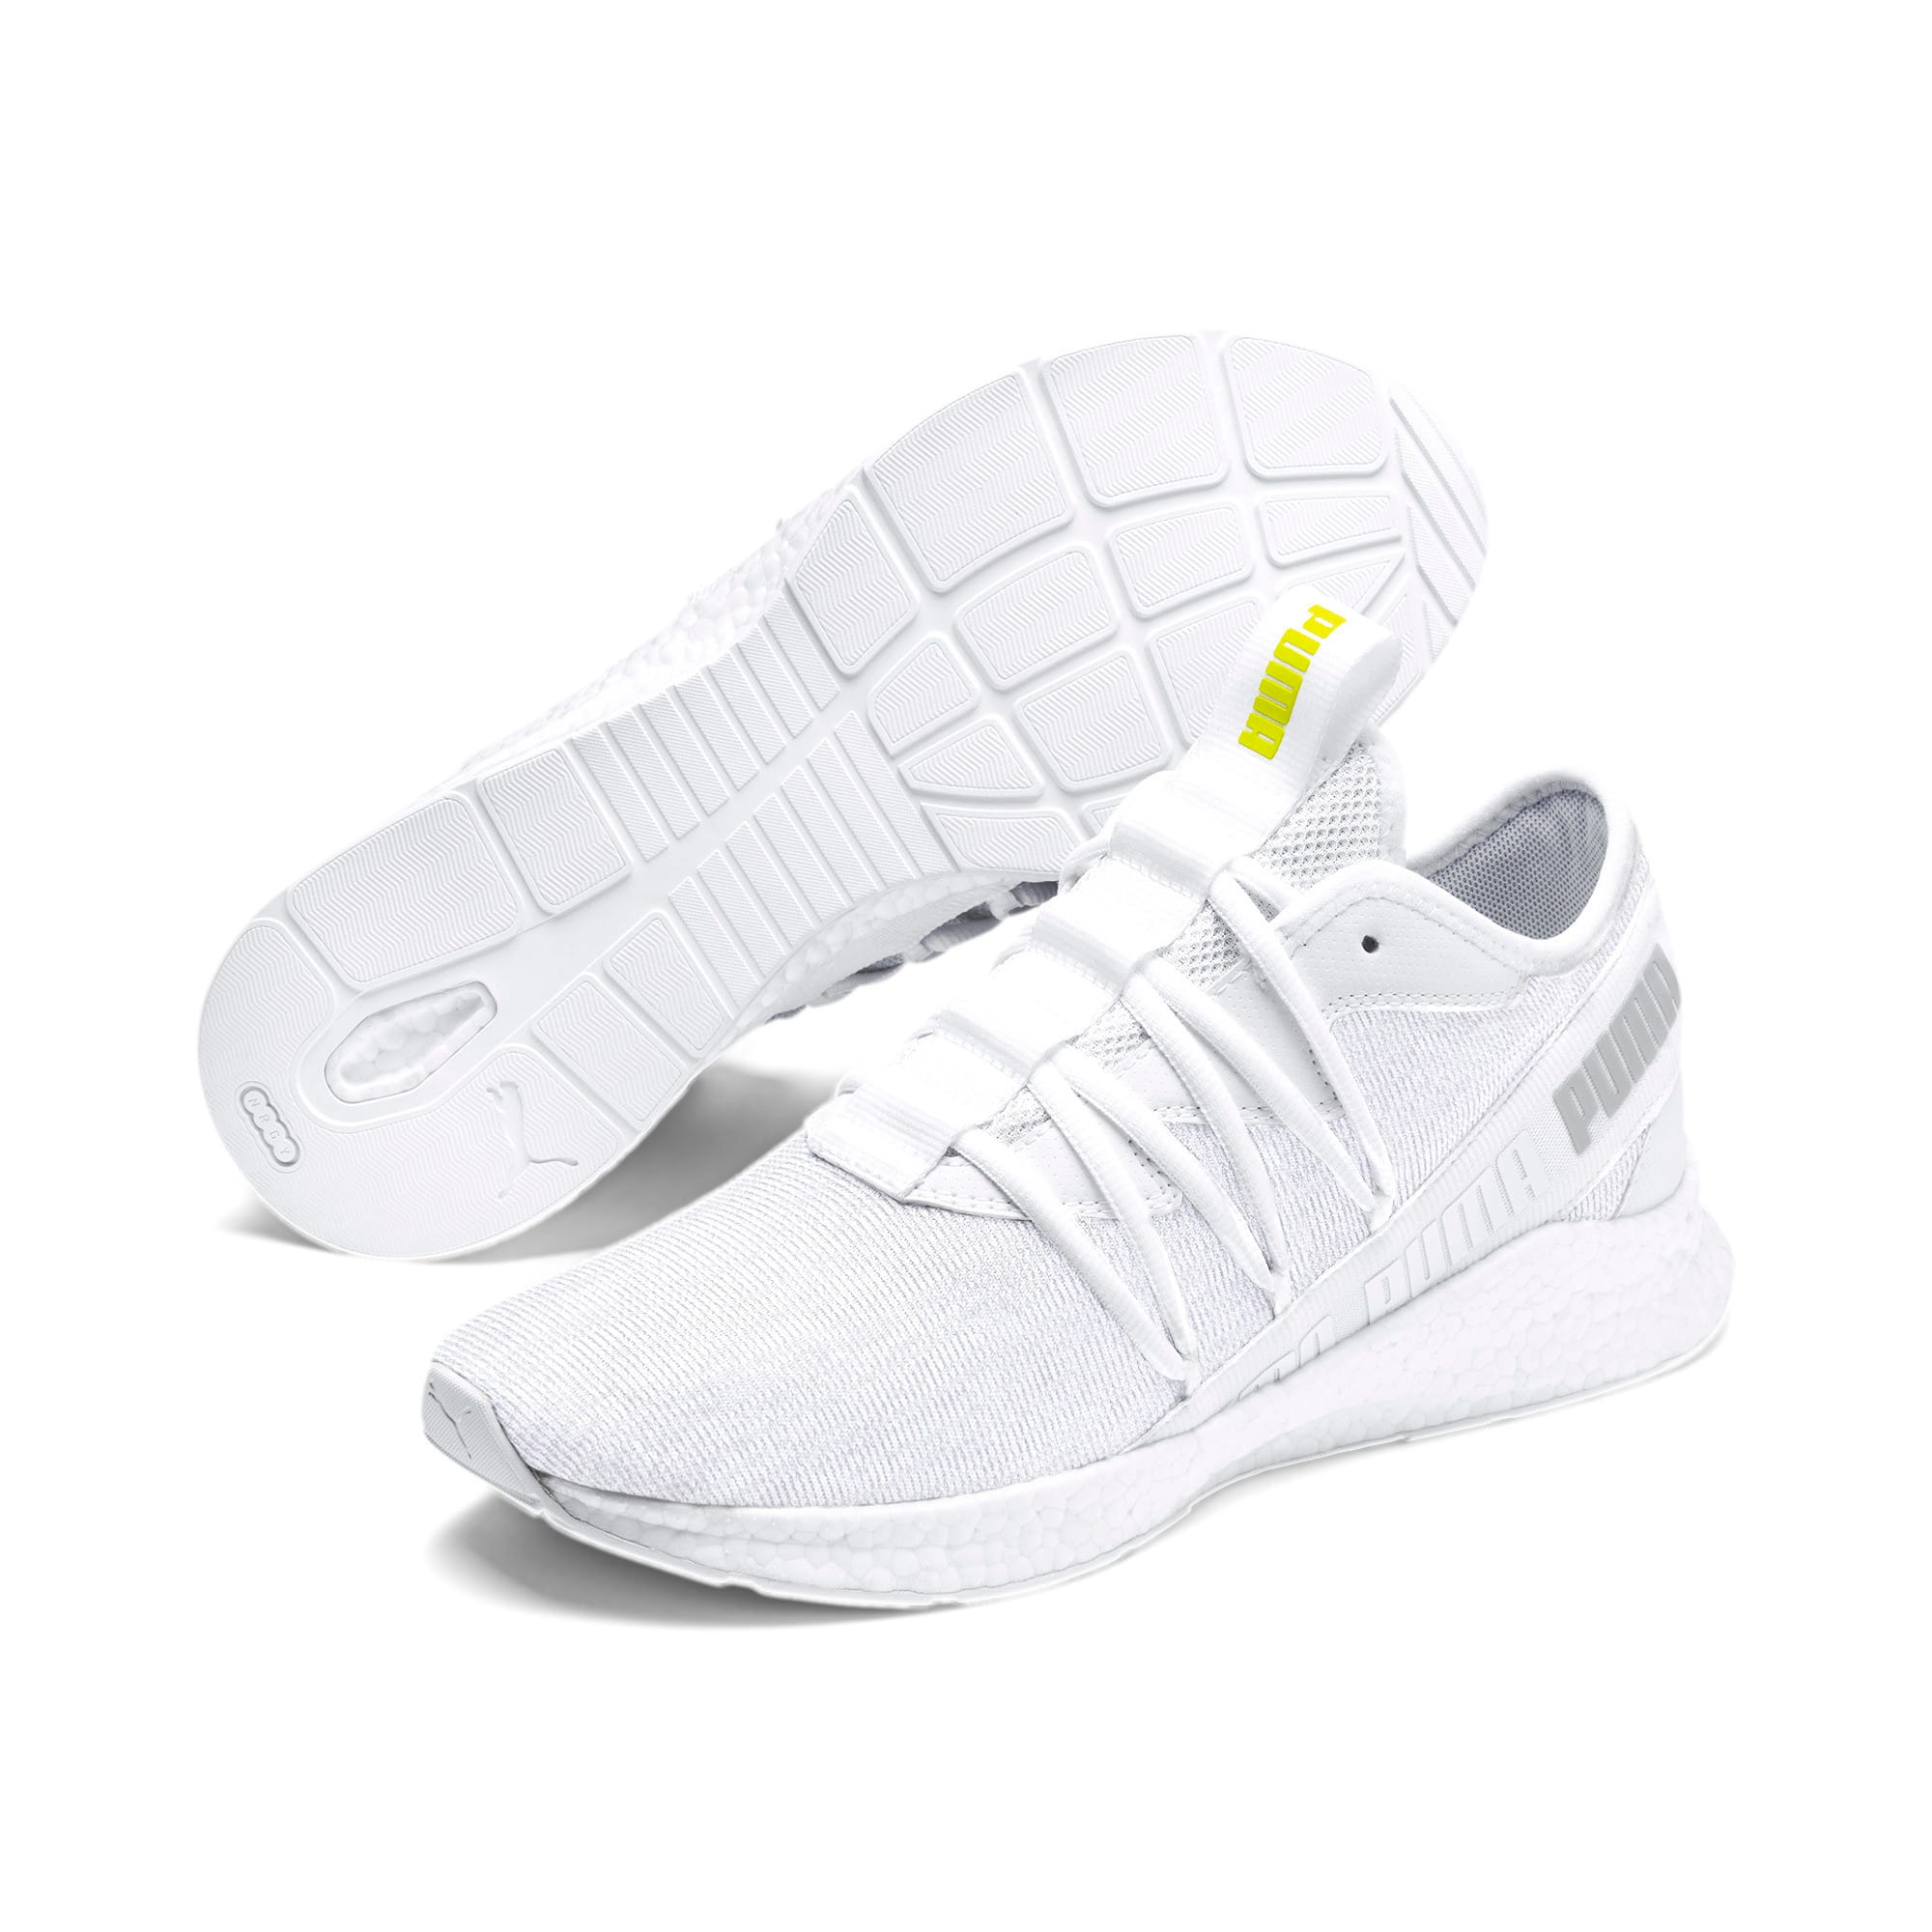 Thumbnail 3 of NRGY Star Knit Trainers, White-Glacier Gray-Yellow, medium